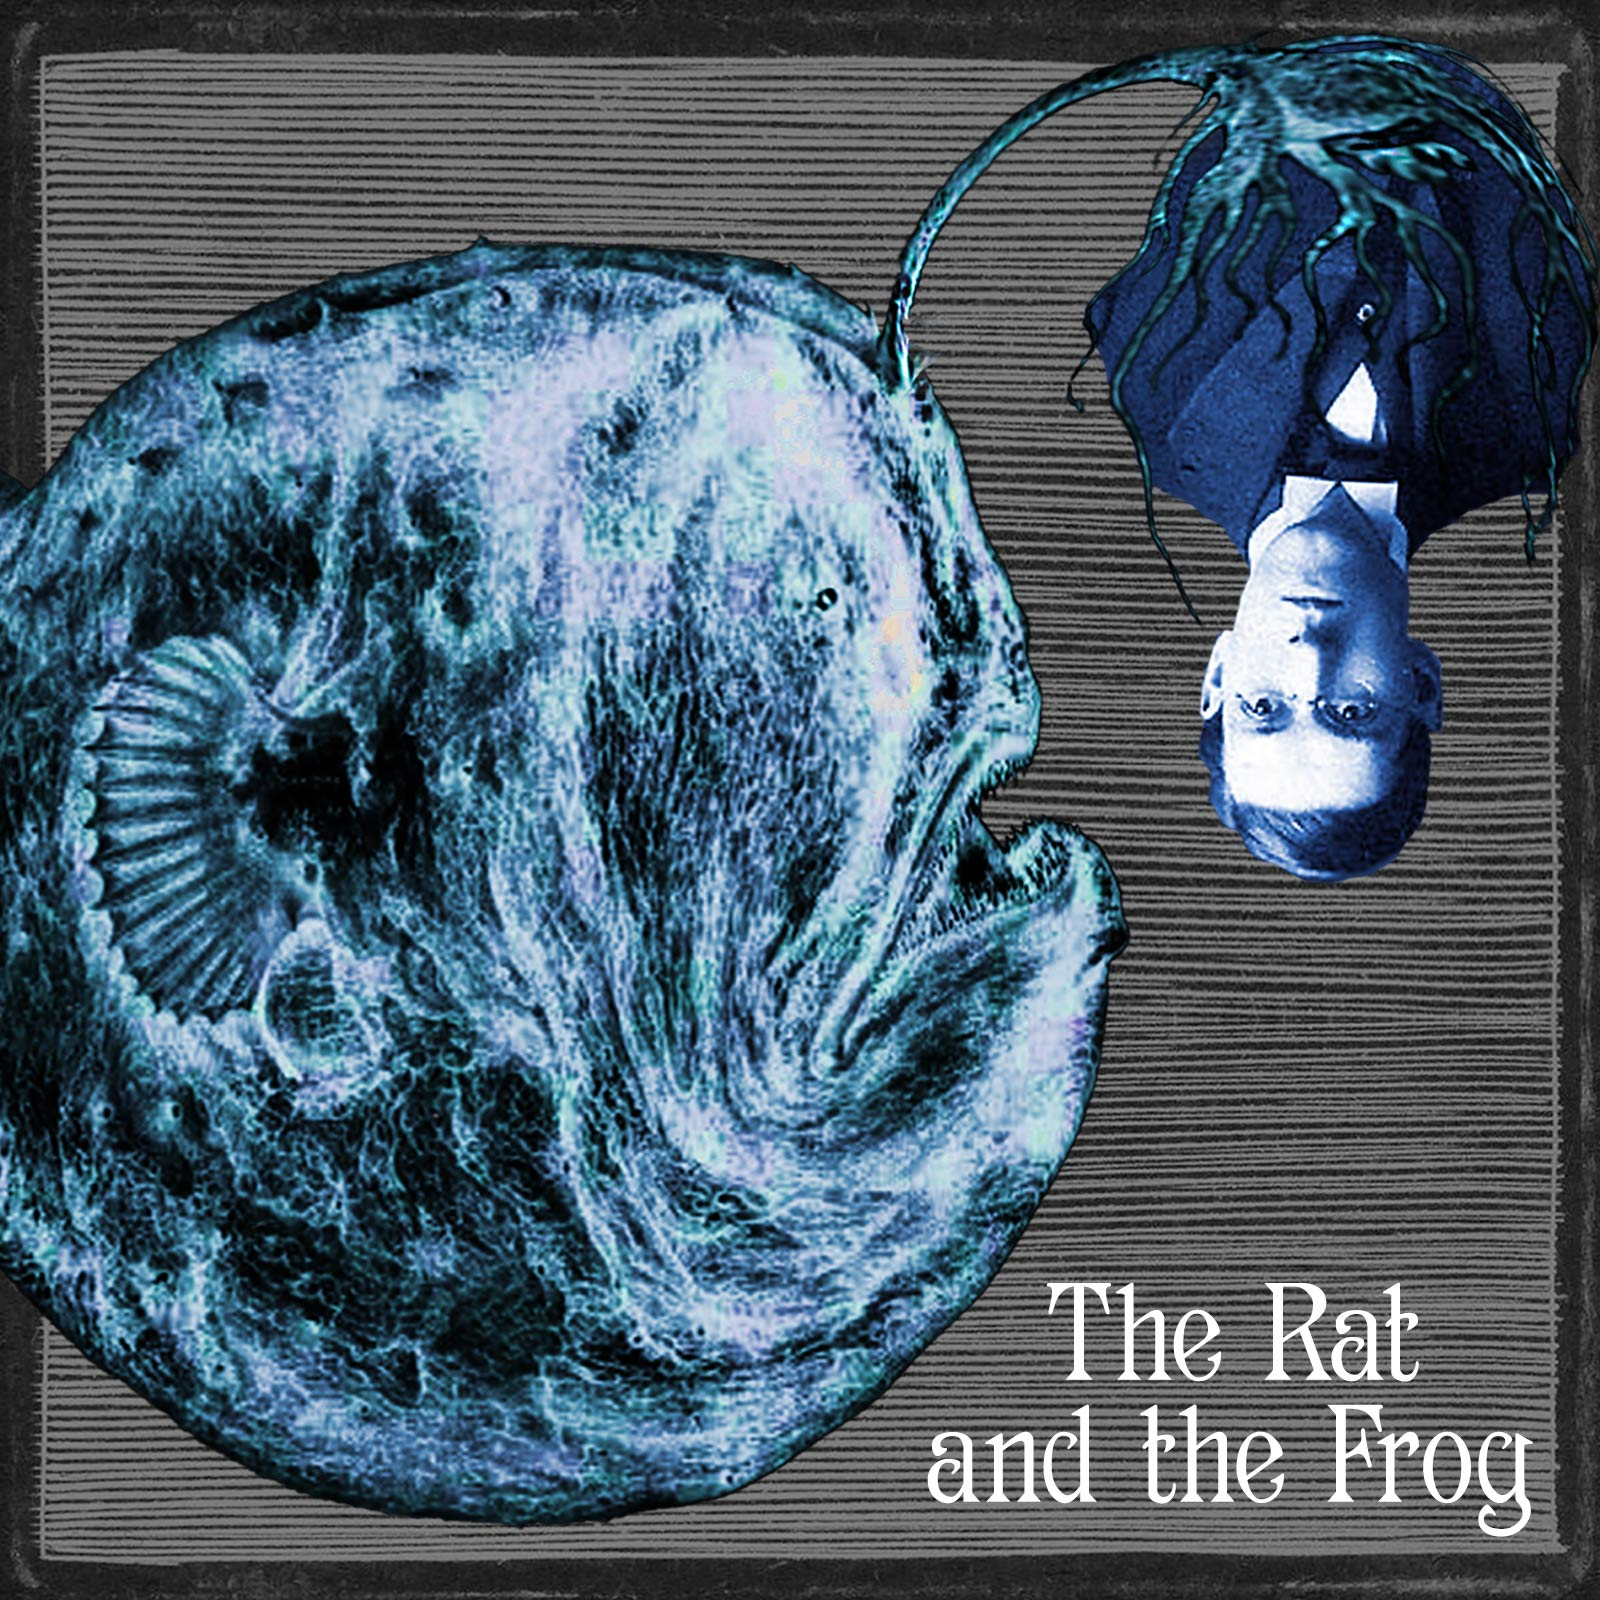 The Rat and the Frog by Emma Whitehall